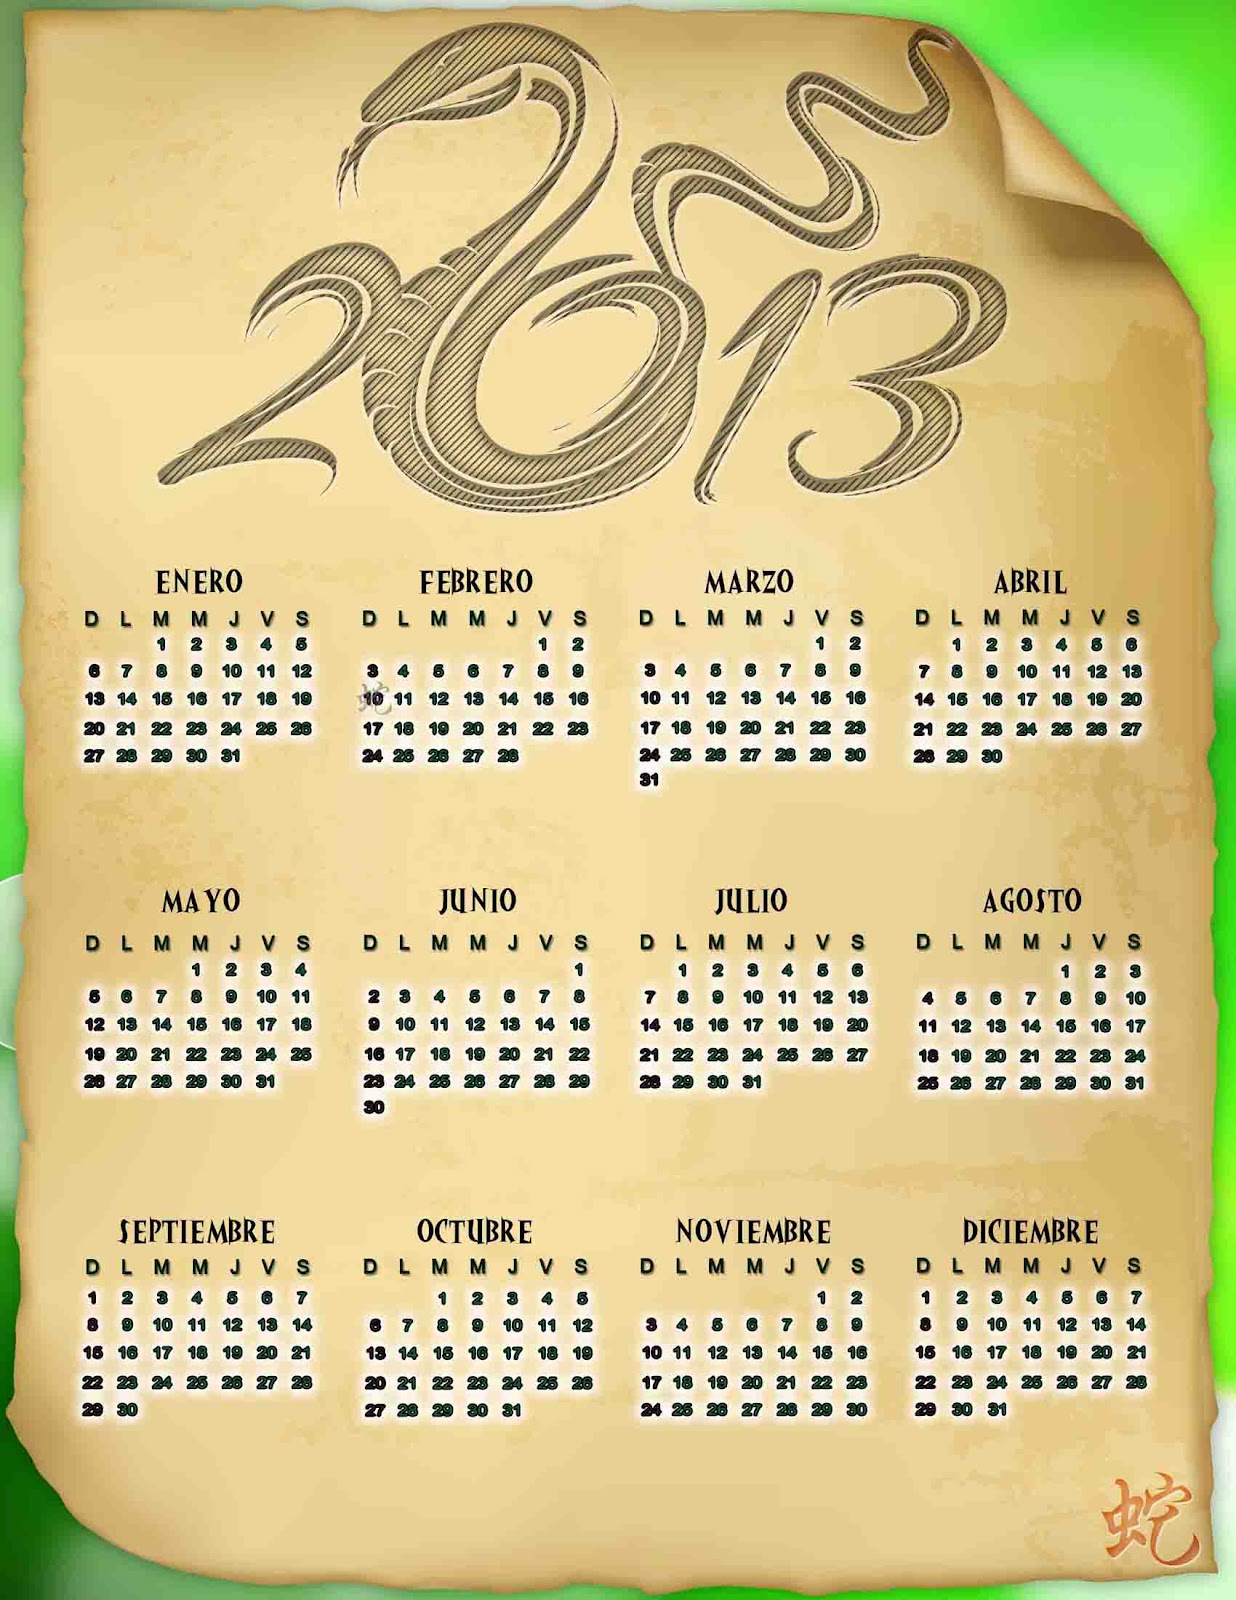 Calendario chino 2013 de la serpiente